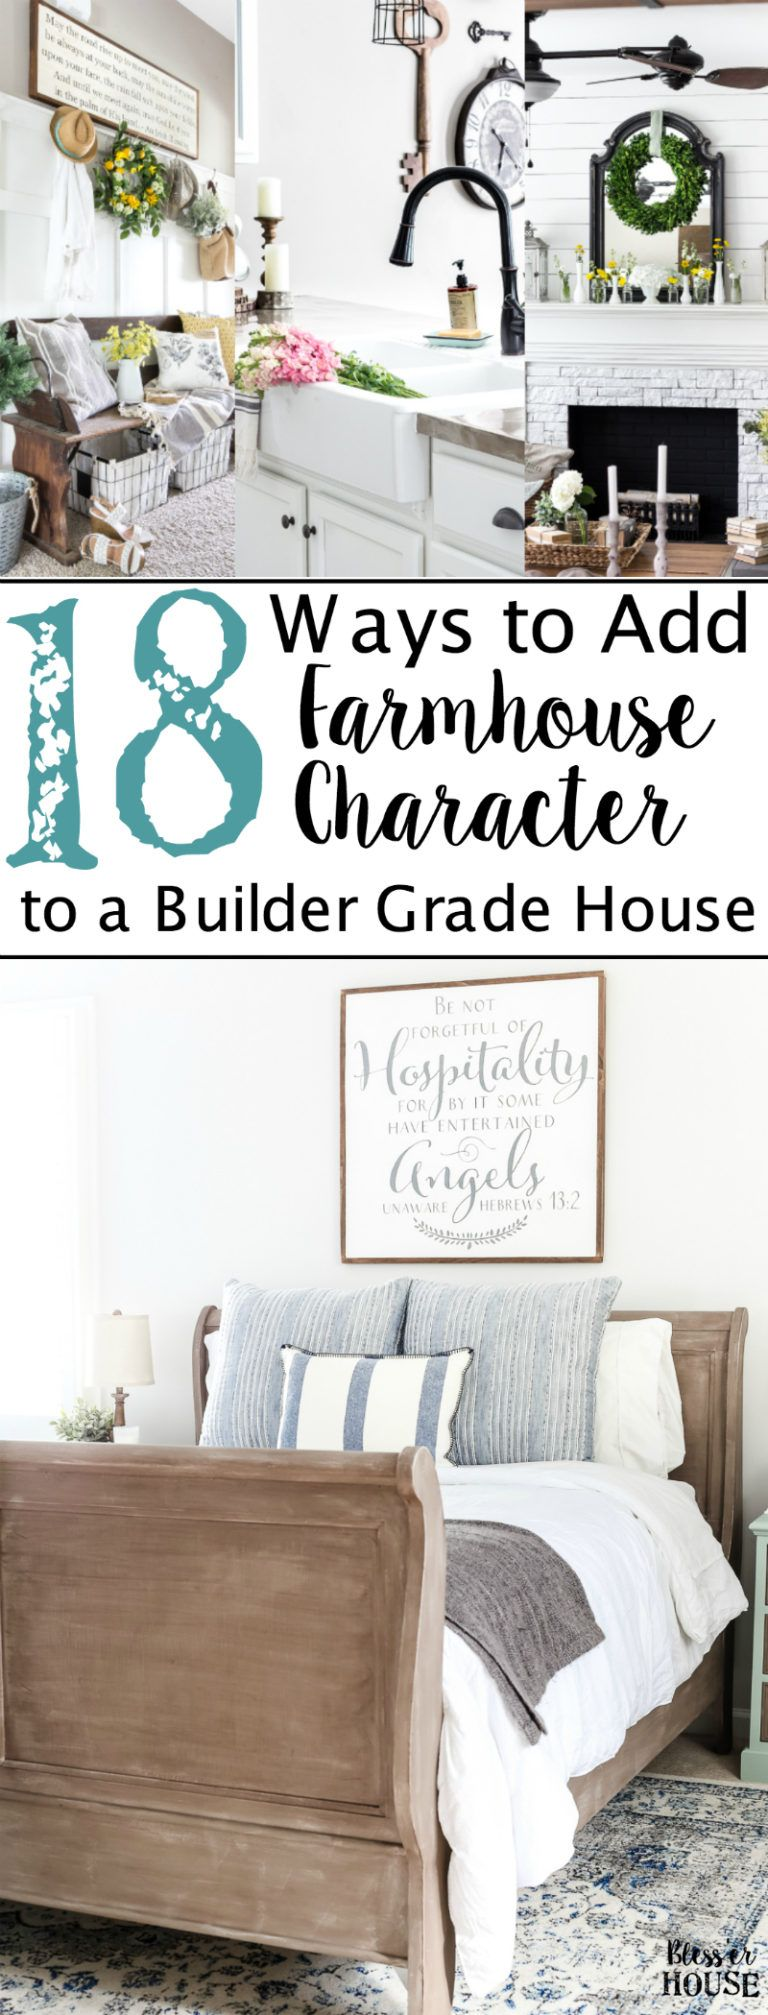 18 Ways to Add Farmhouse Character to a Builder Grade House ...